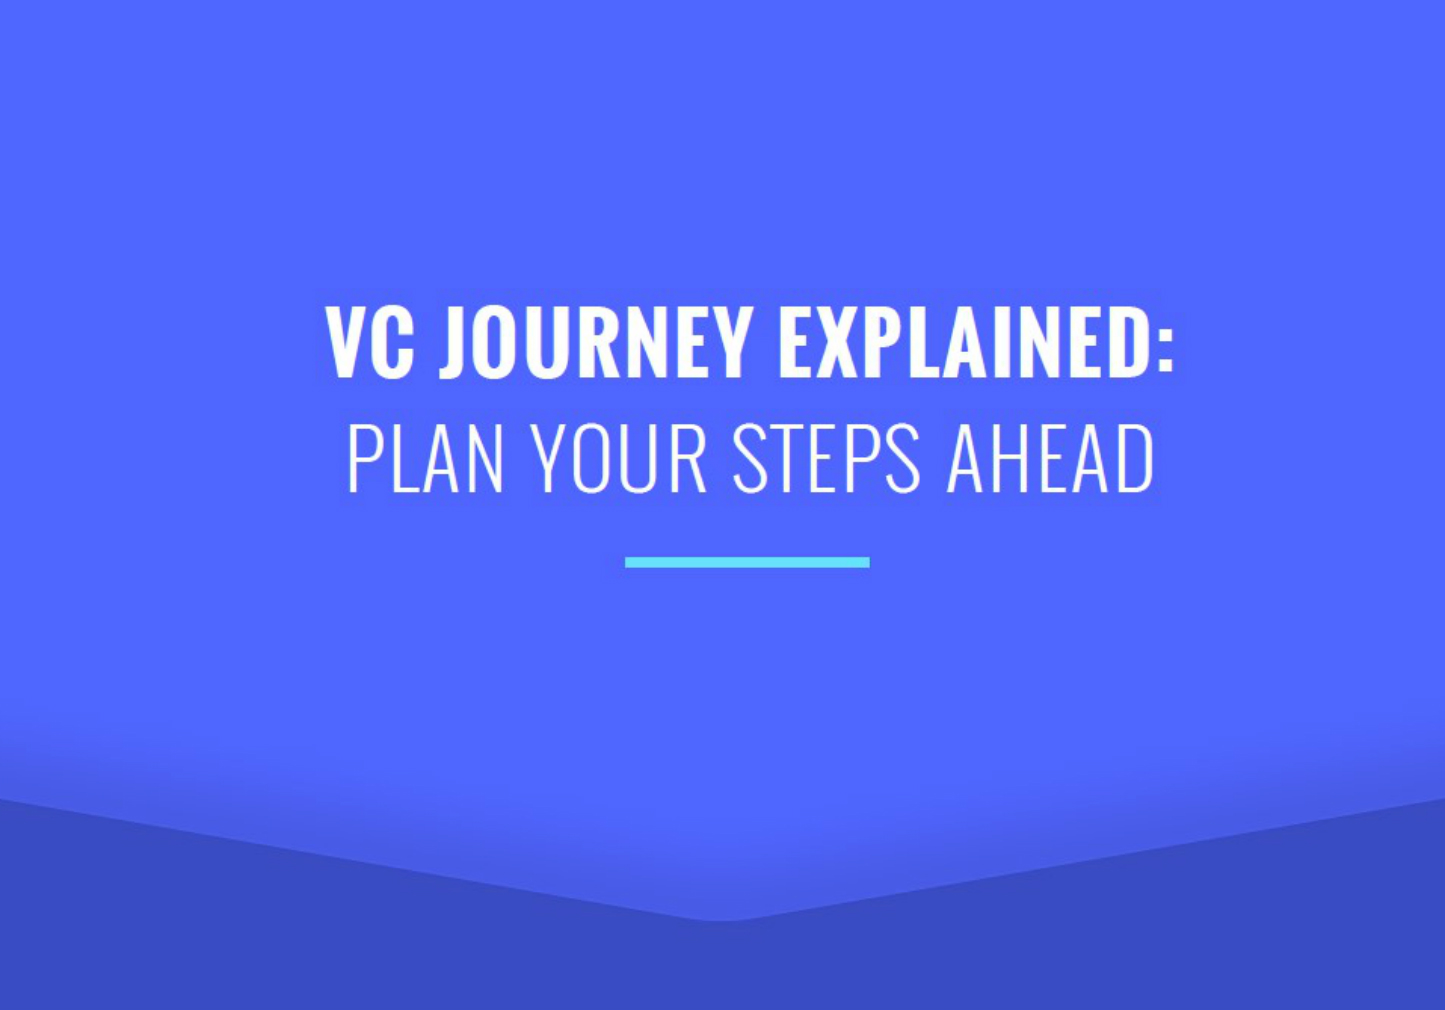 How to Become a VC: VC Journey Explained